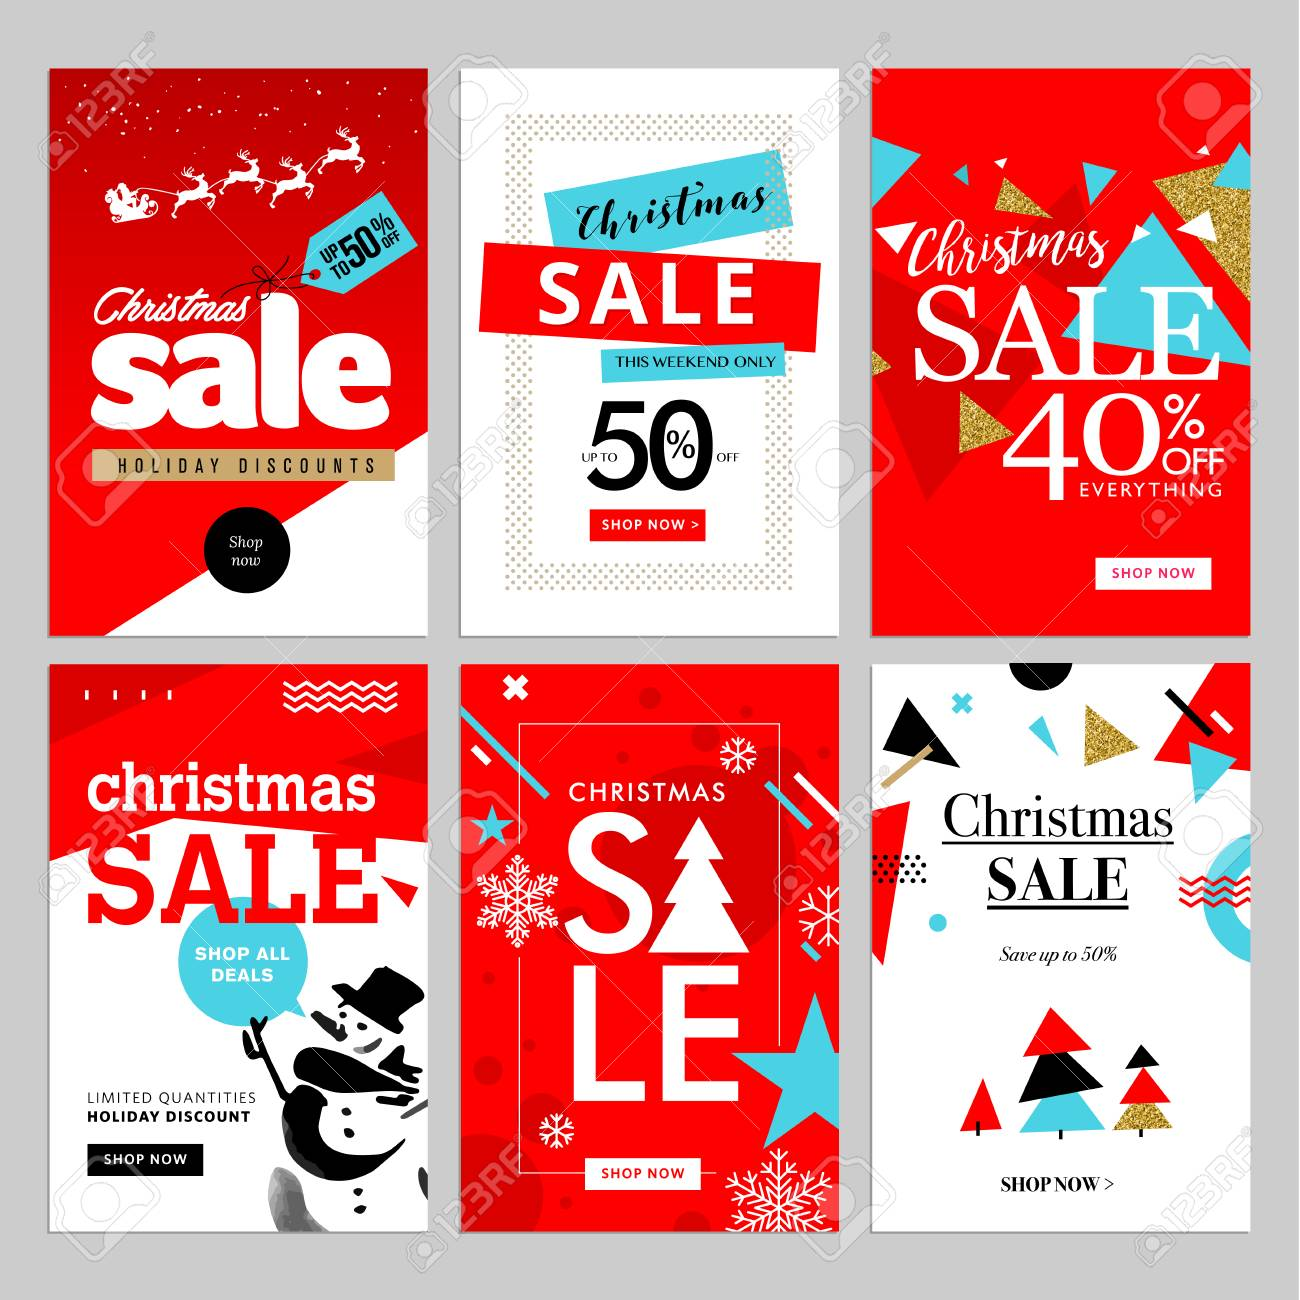 Set Of Christmas And New Year Mobile Sale Banners Vector Illustrations Royalty Free Cliparts Vectors And Stock Illustration Image 66002998